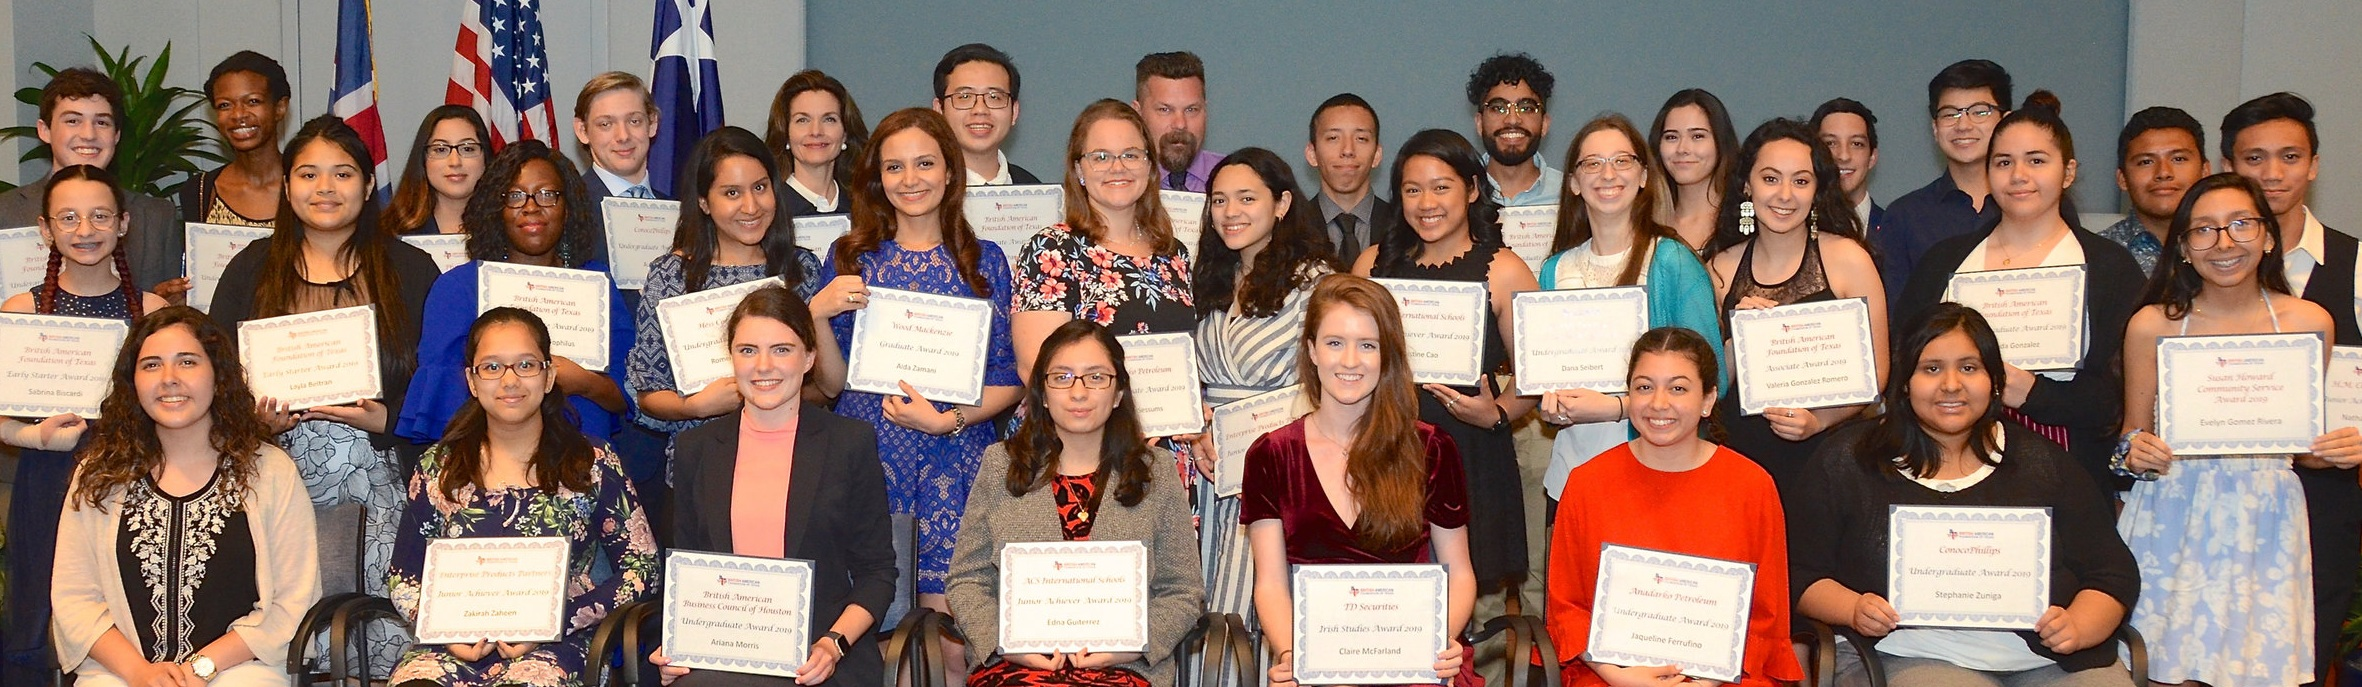 The British American Foundation of Texas Class of 2019